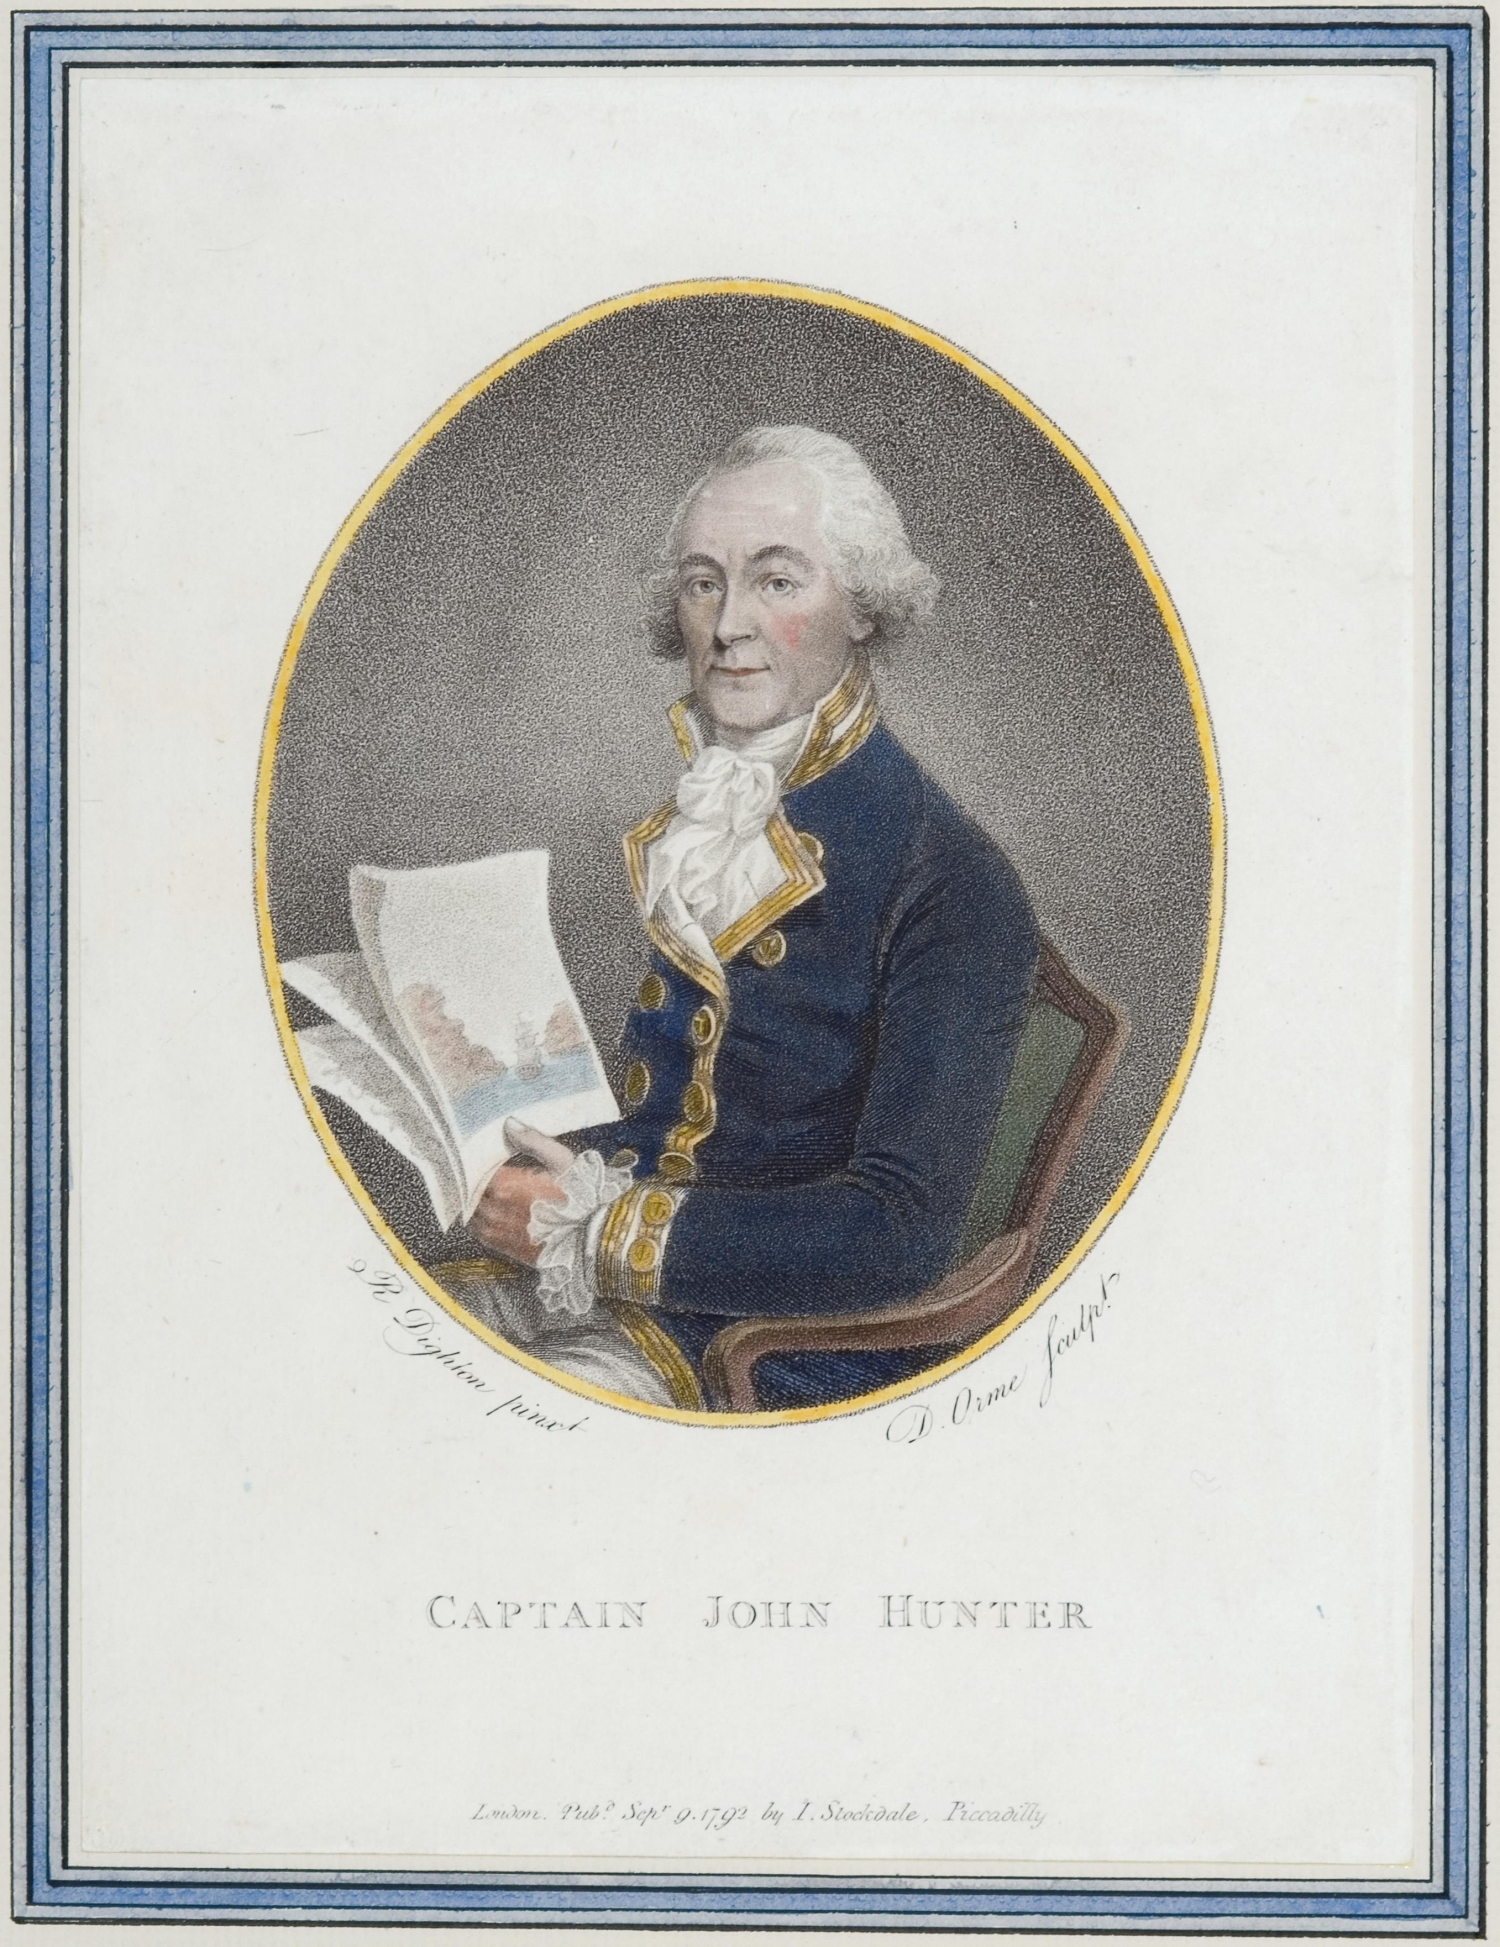 Portrait of Captain John Hunter